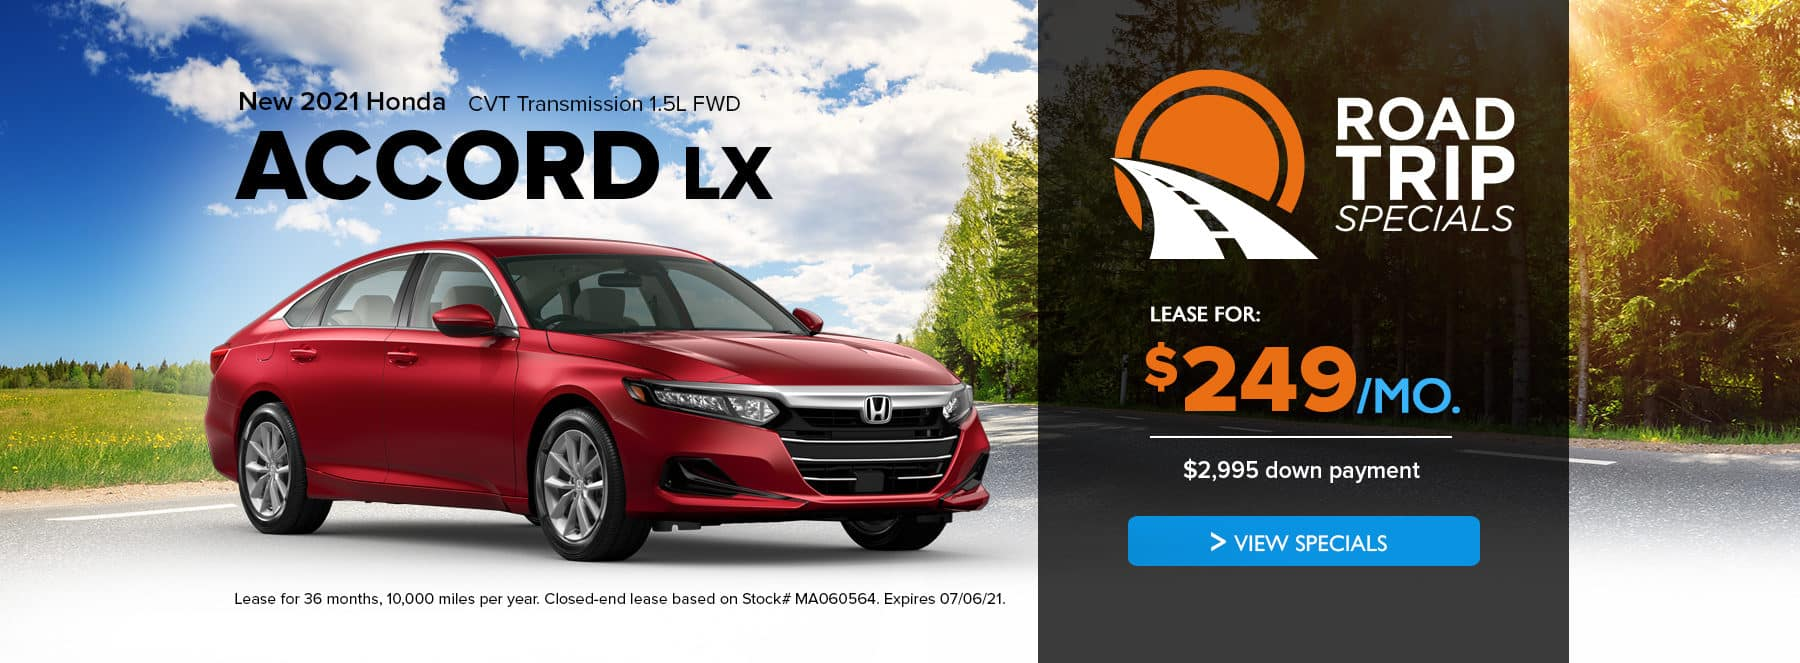 Lease a 2021 honda accord lx for $249/month with $2,995 down payment